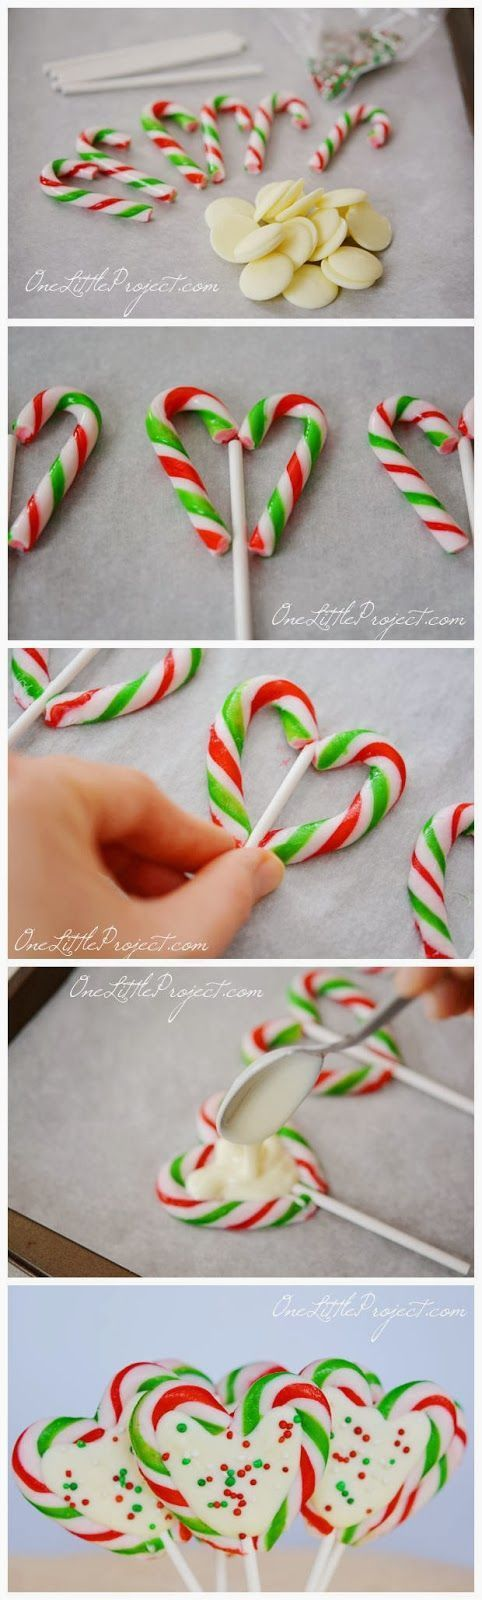 These candy cane hearts are ADORABLE!! Bake them for a few minutes to get the candy canes to bend. What a fun Christmas treat idea!